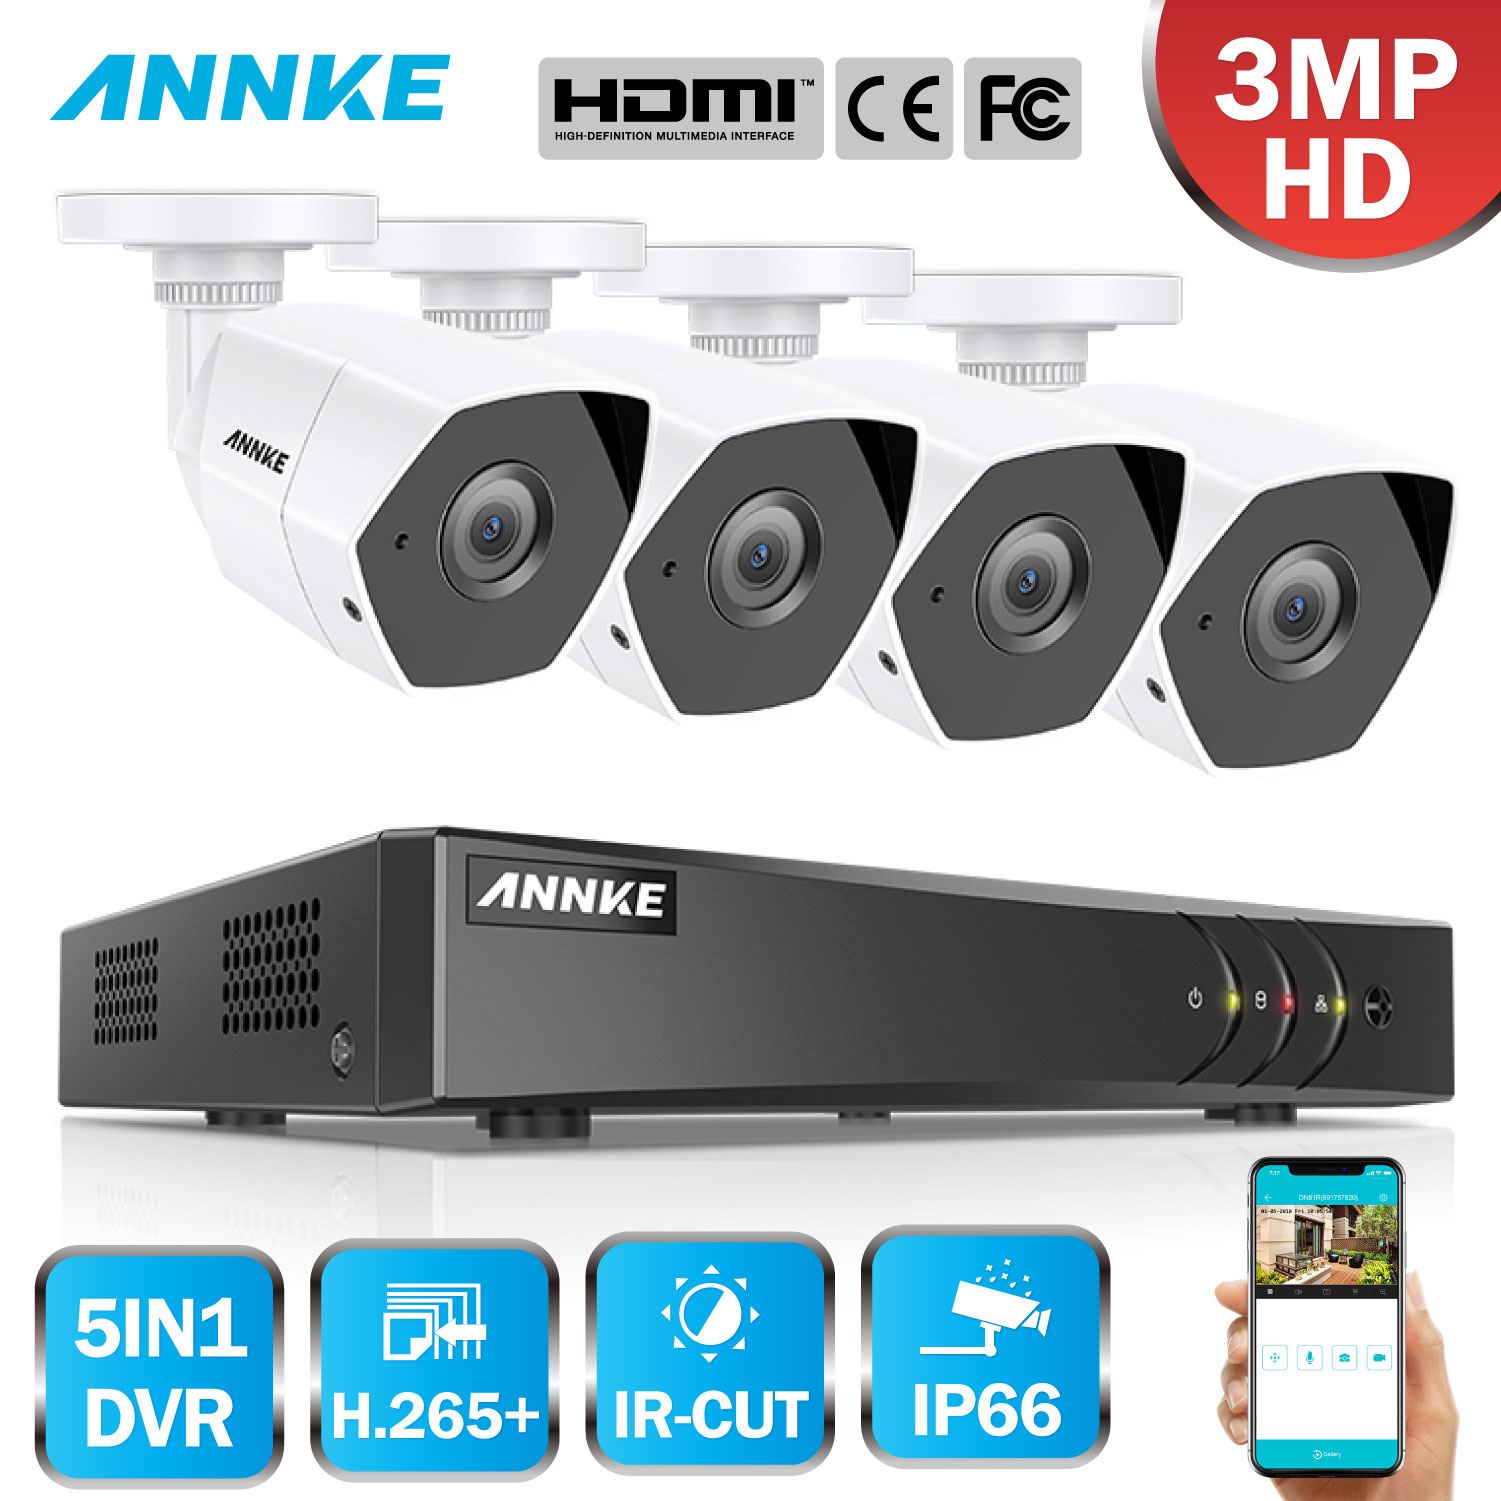 ANNKE FHD 4CH 5in1 3MP Home Outdoor CCTV Security System Kit With 3MP Surveillance Bullet Weatherproof Camera H.265 HDMI DVRANNKE FHD 4CH 5in1 3MP Home Outdoor CCTV Security System Kit With 3MP Surveillance Bullet Weatherproof Camera H.265 HDMI DVR